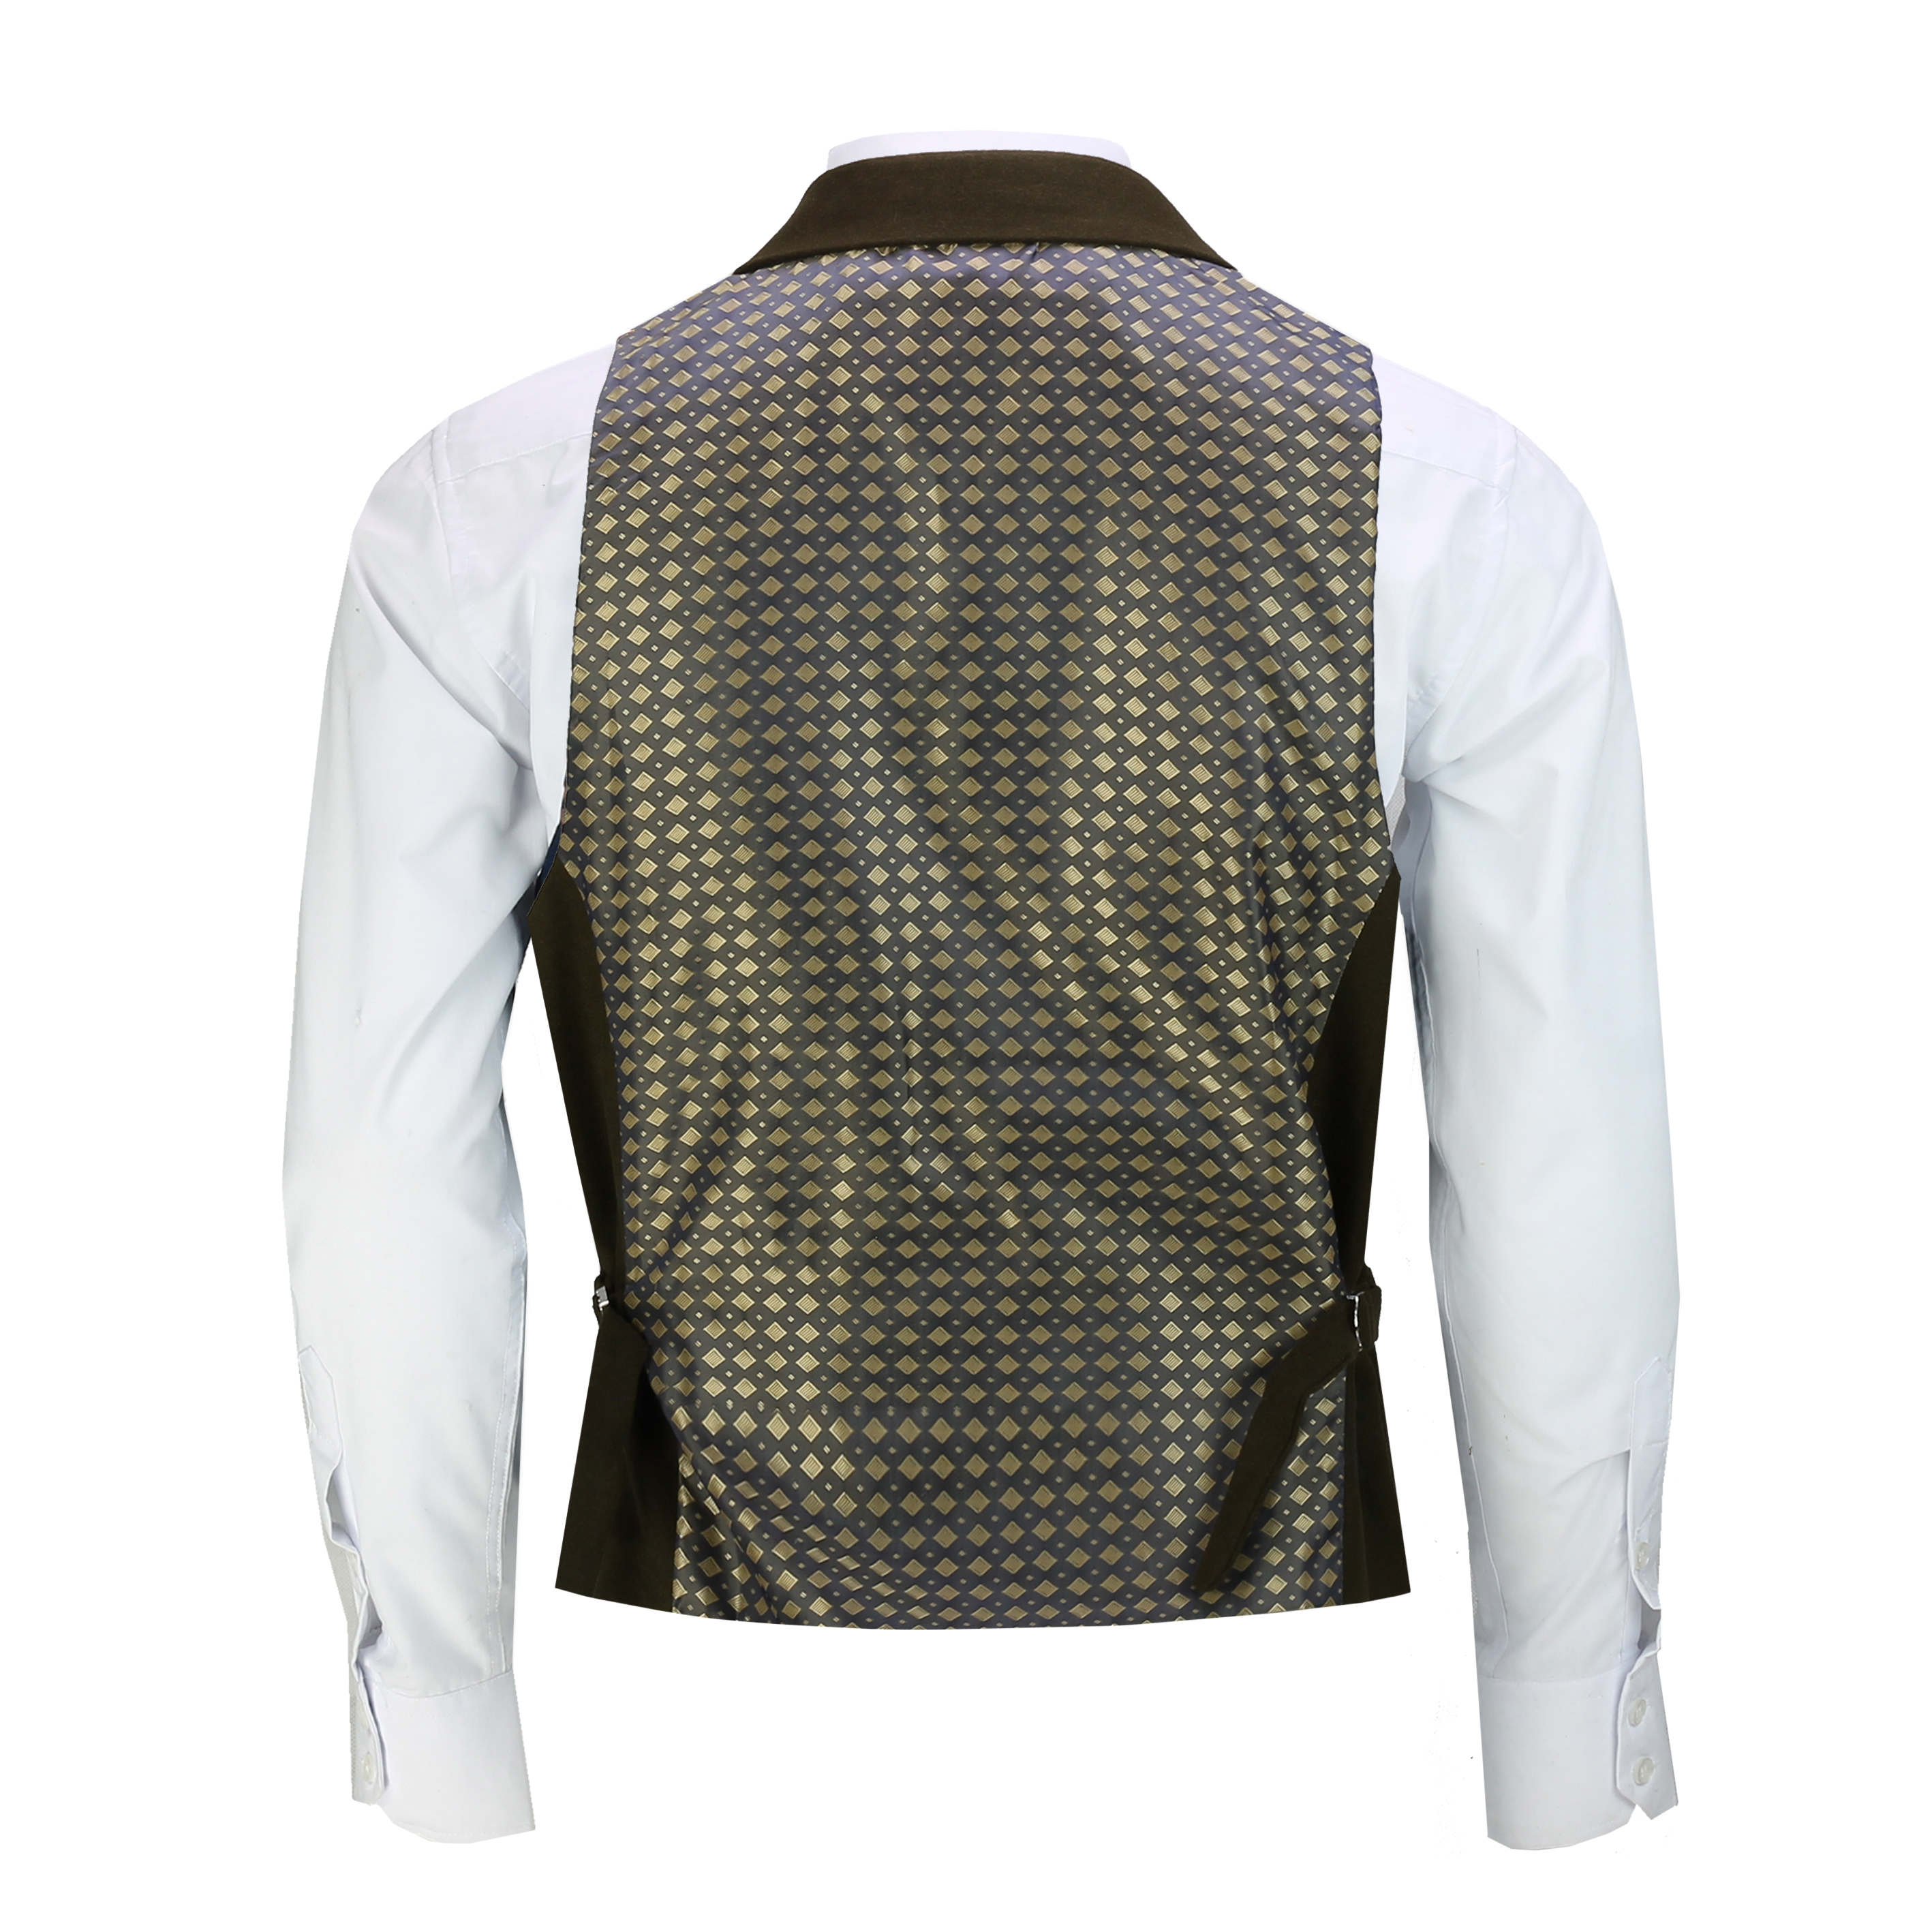 Mens-Classic-Collar-Waistcoat-Retro-Vintage-Style-Tailored-Fit-Smart-Formal-Vest thumbnail 7